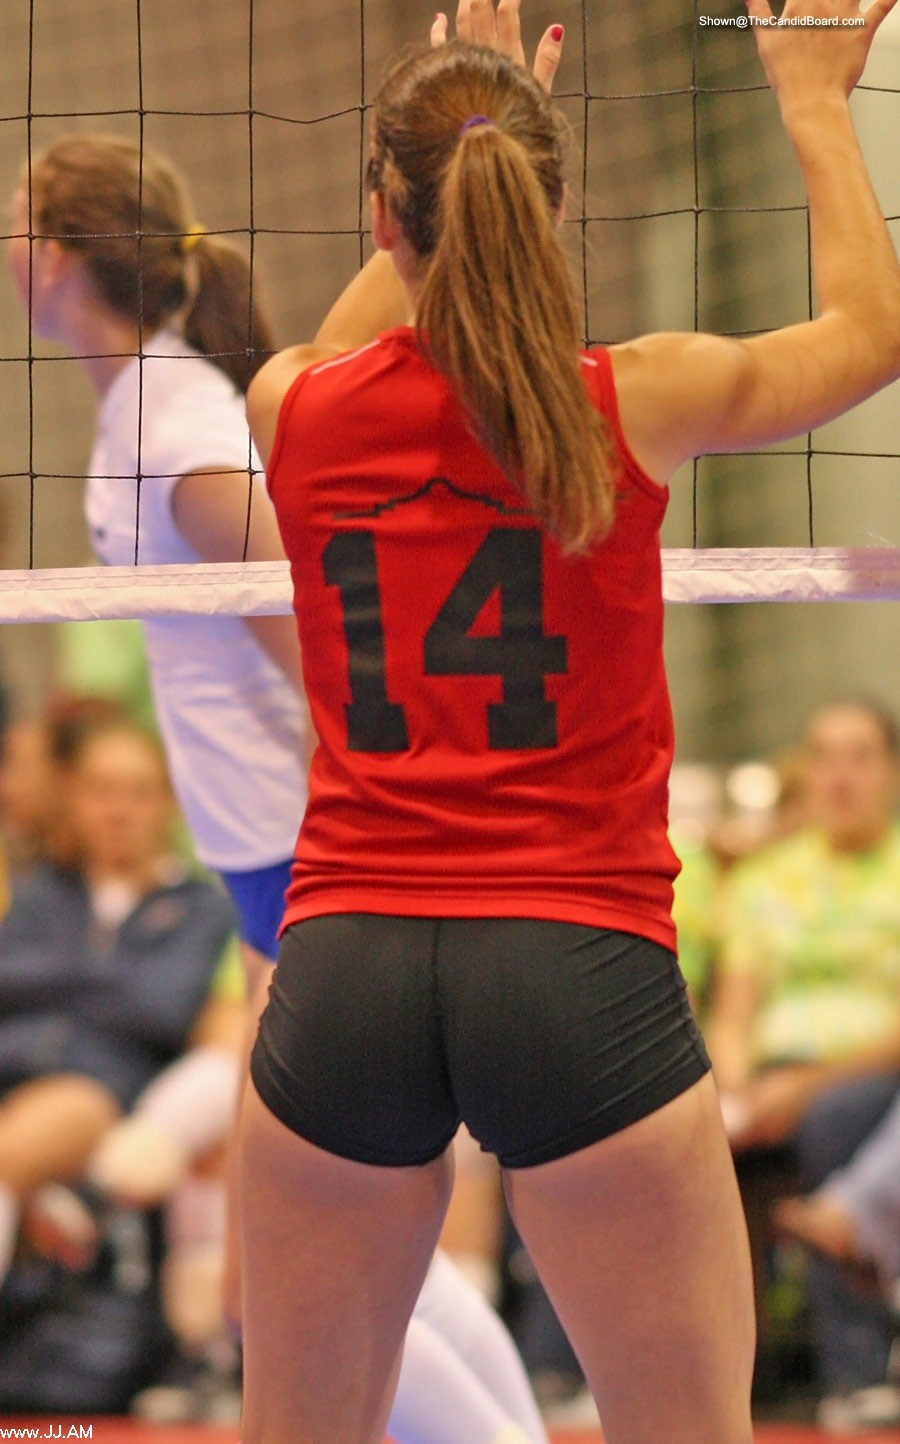 Apologise, but, girls volleyball shorts big butts